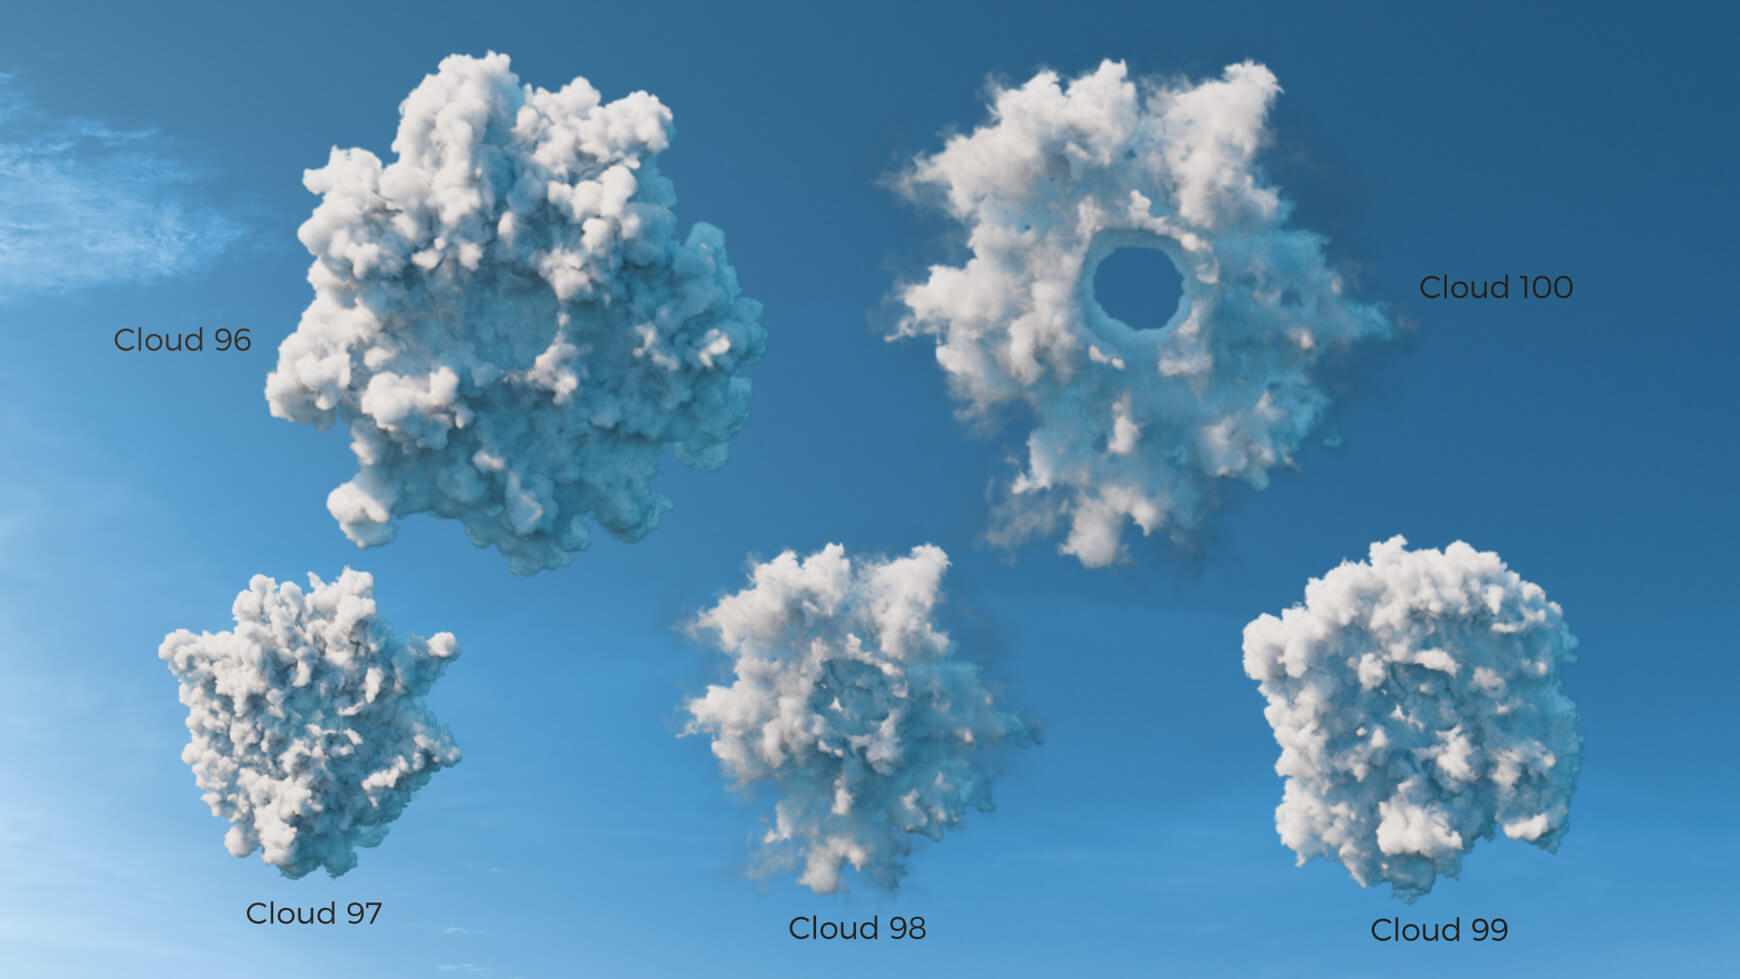 VDB-Clouds-Pack-Cinema-4D-3D-76-80